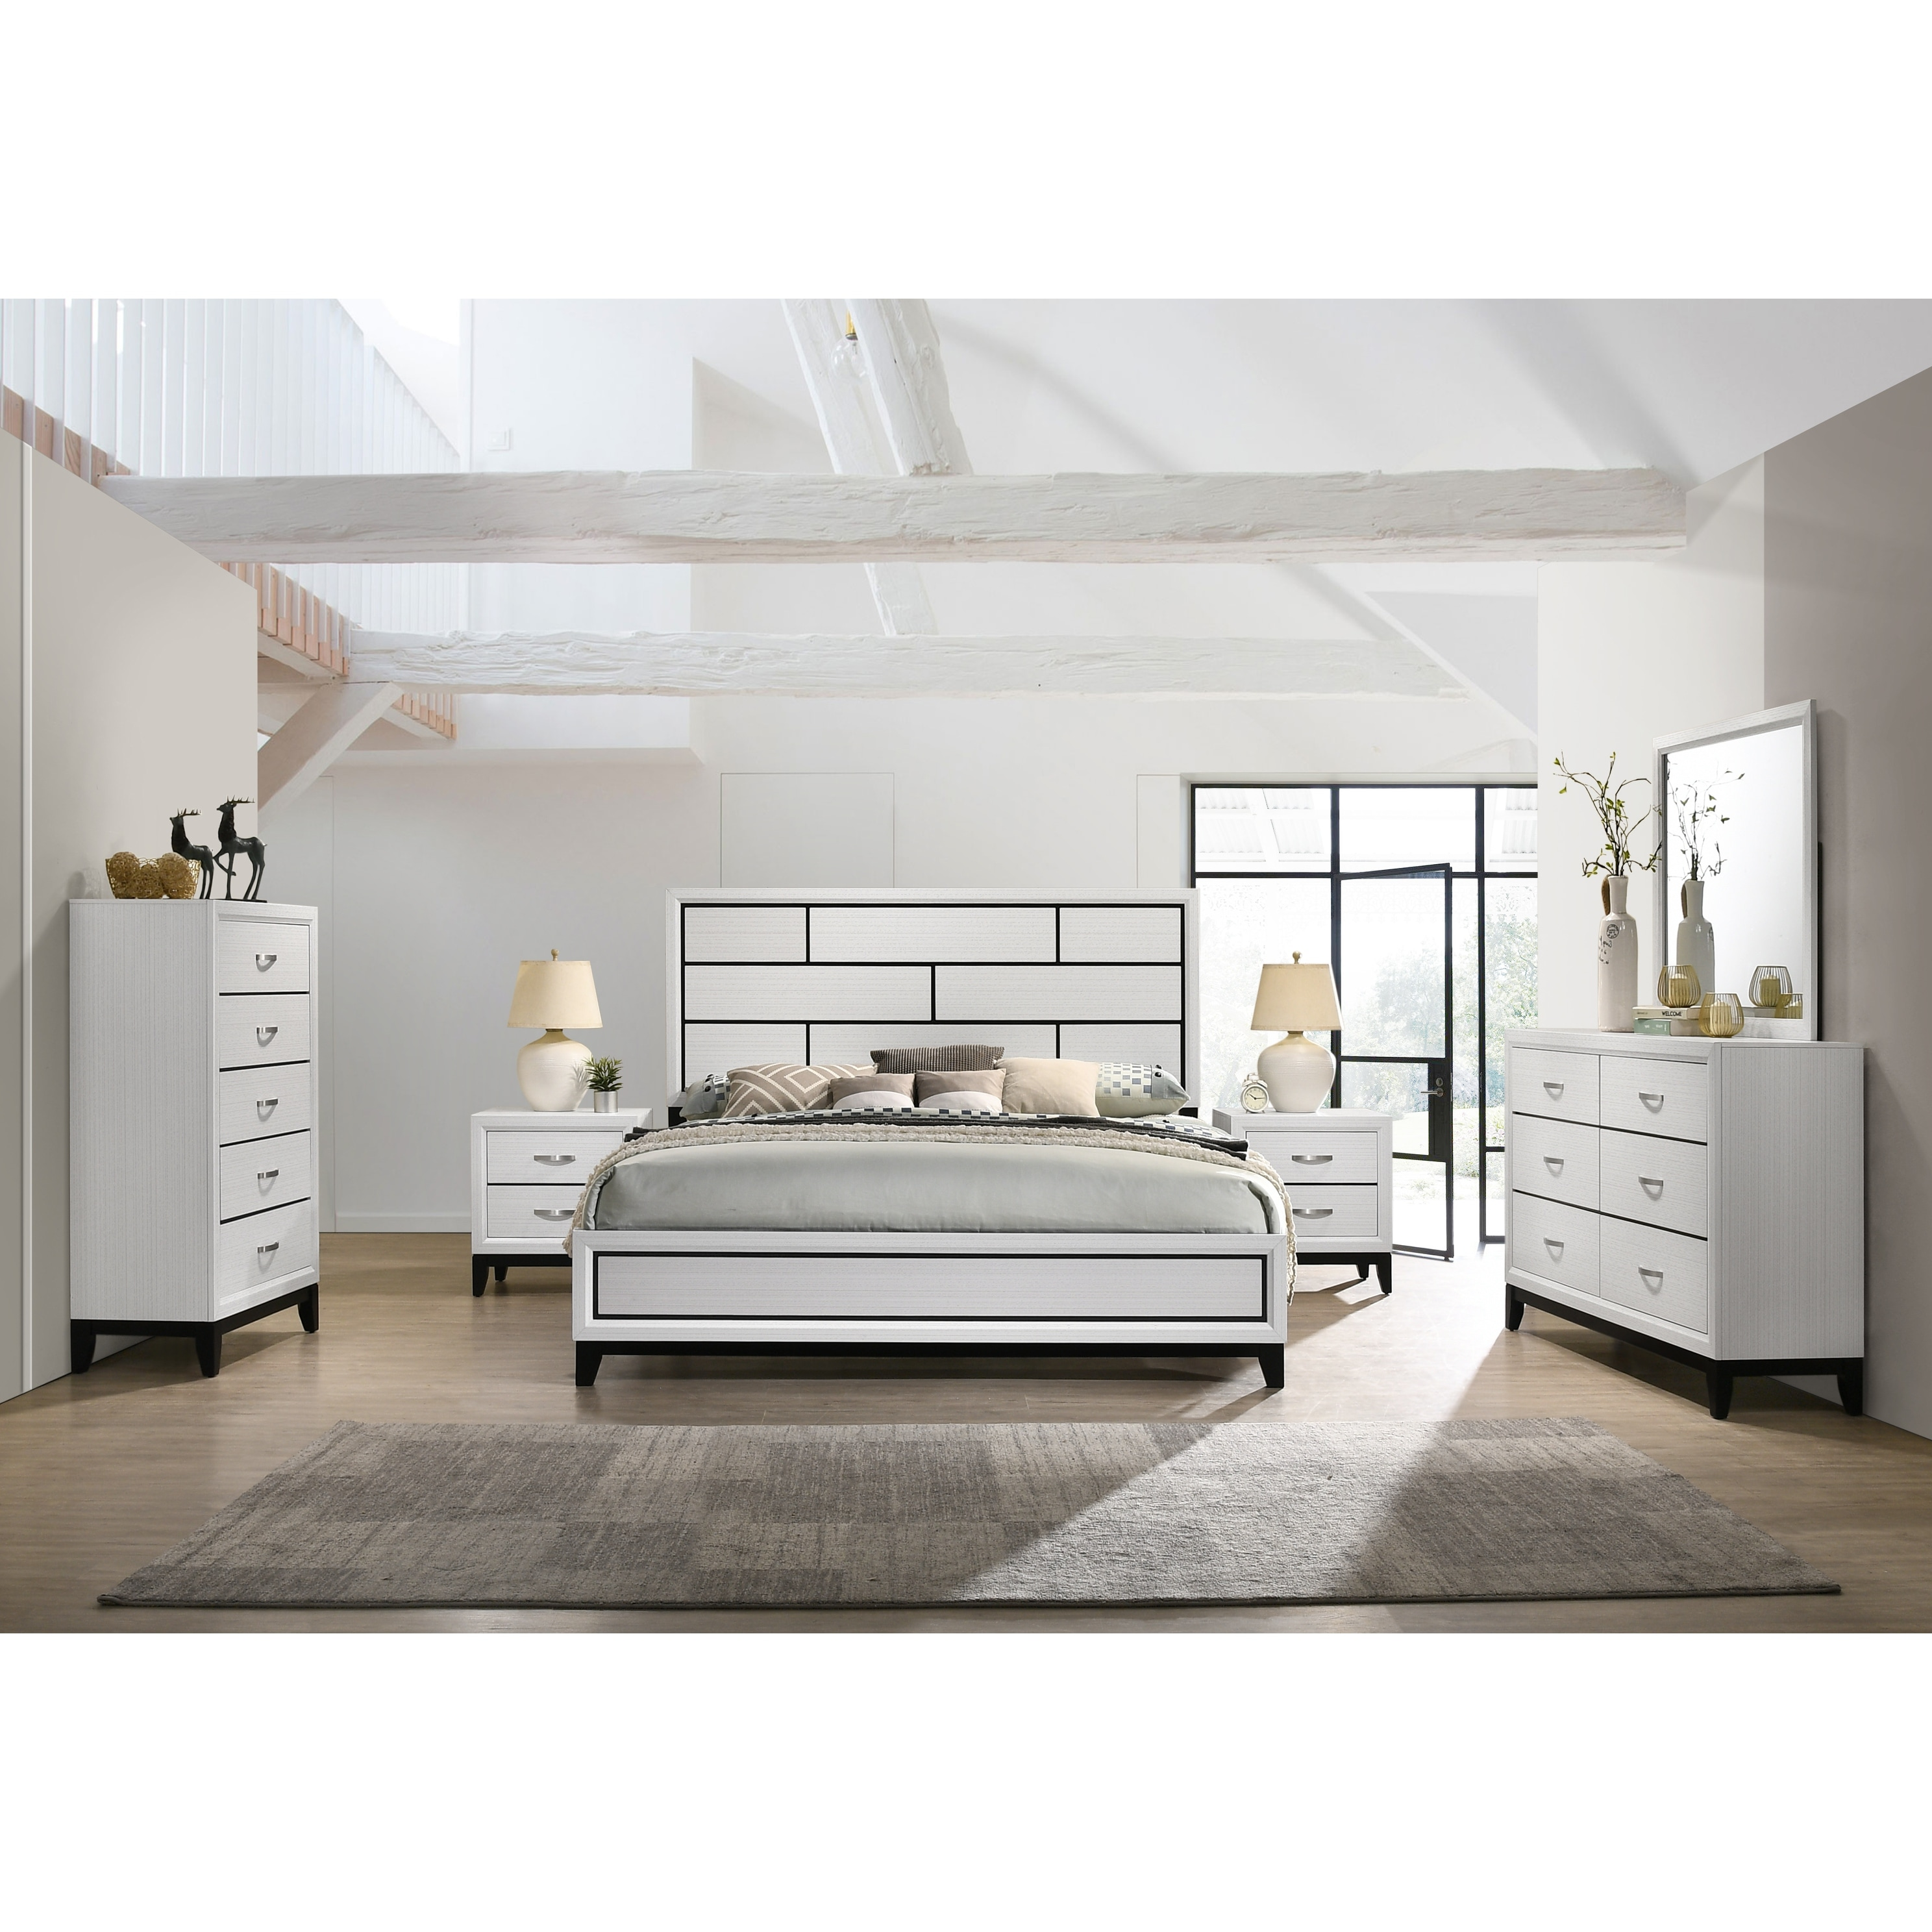 Shop Stout Contemporary Panel Bedroom Set In White Finish With Panel Bed Dresser Mirror 2 Night Stands Chest On Sale Overstock 31640569